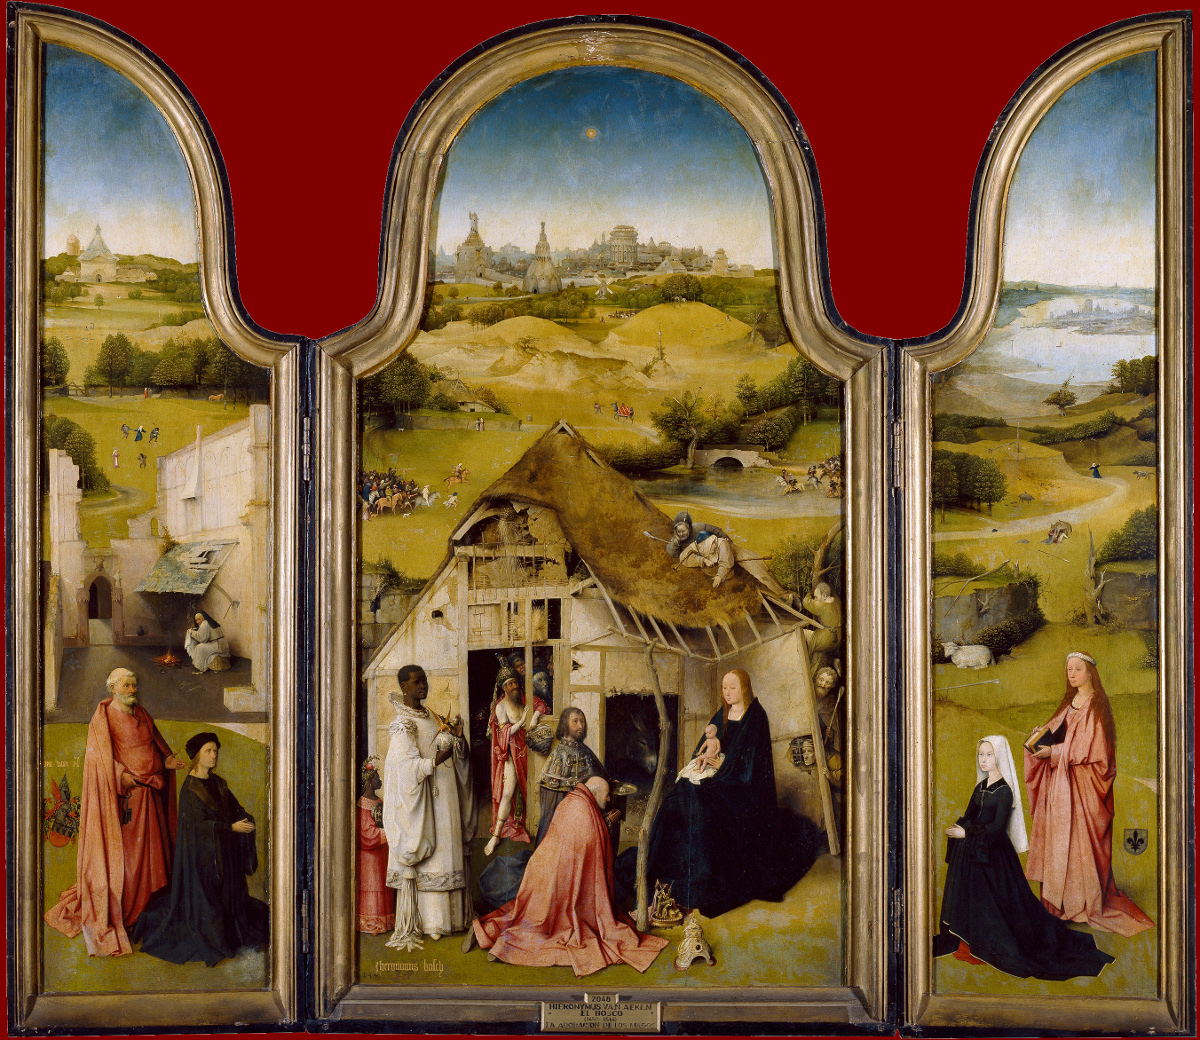 Jheronimus Bosch: The Adoration of the Magi